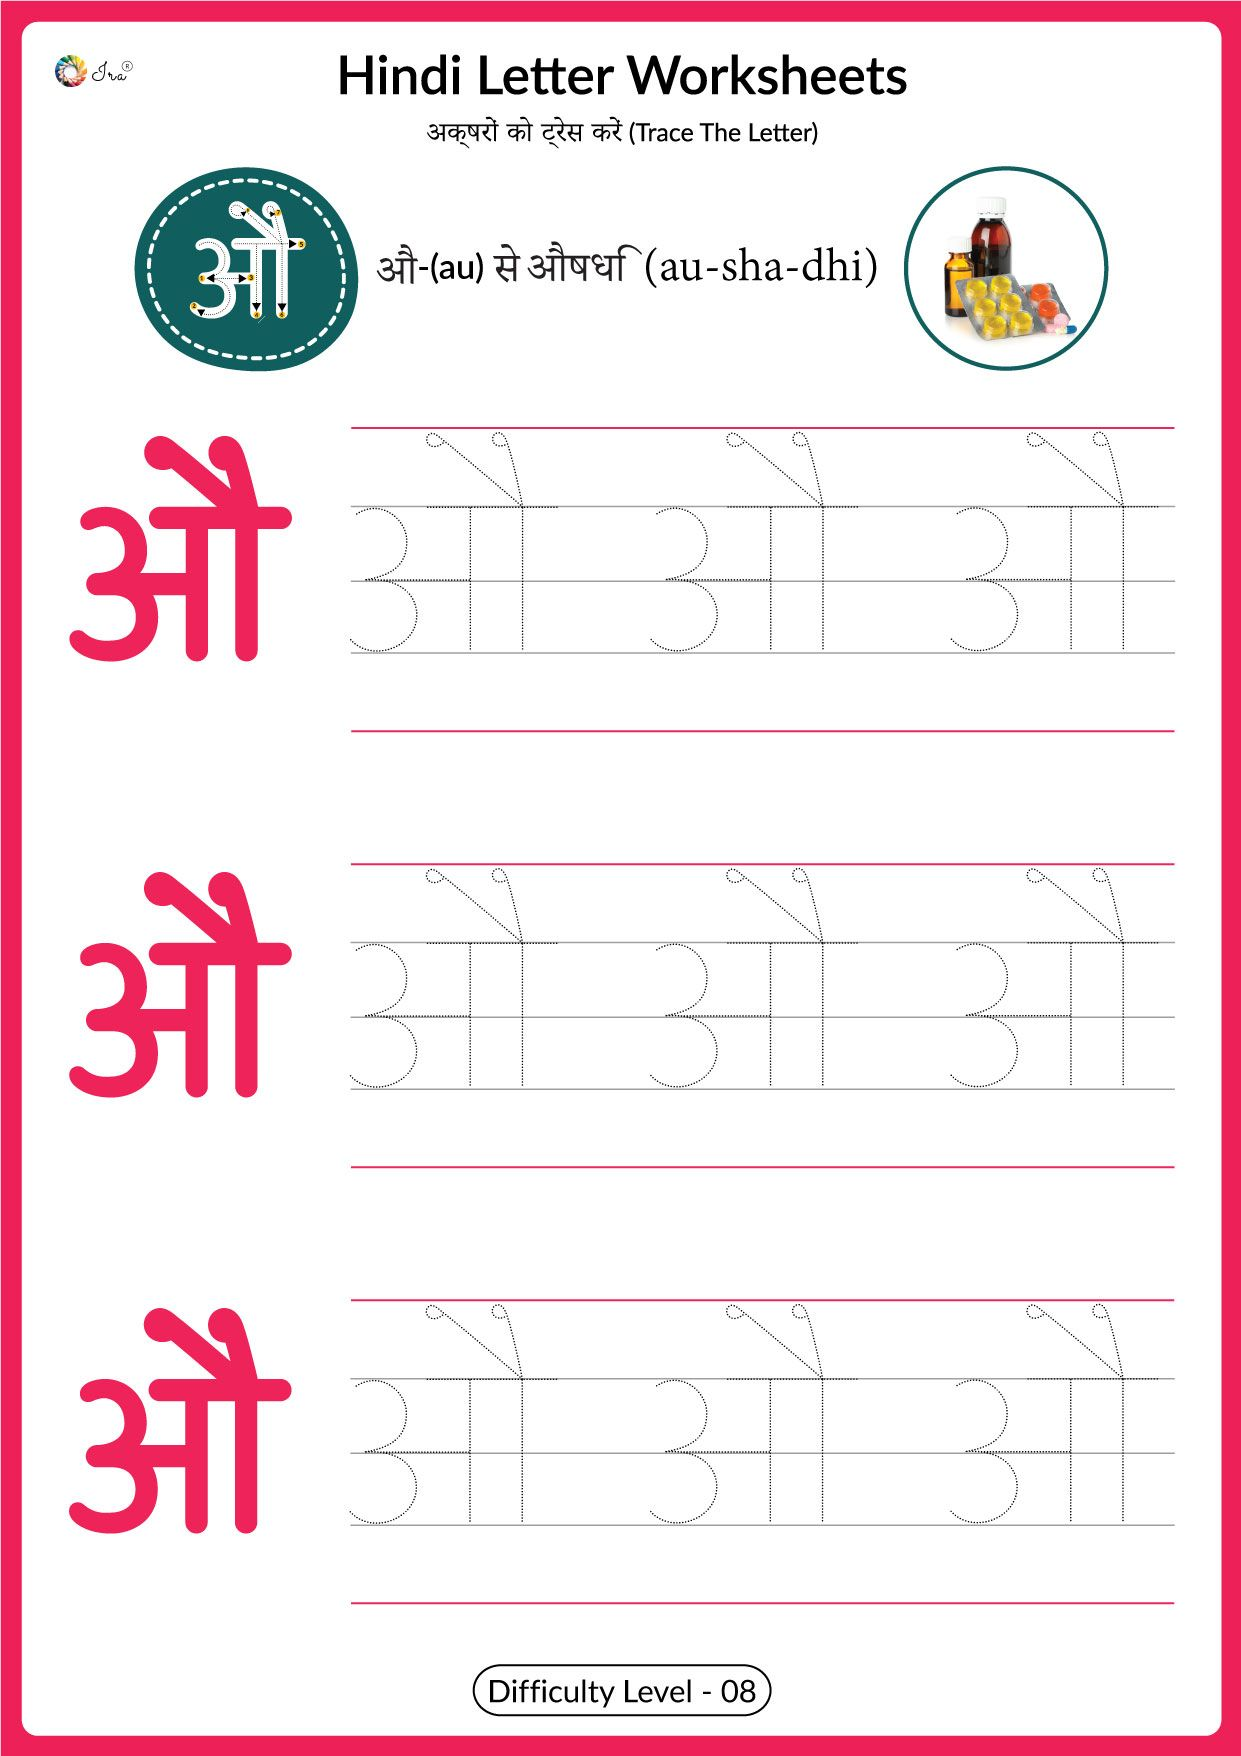 Hindi Swar Tracing Worksheet Printable Worksheets And Activities For Teachers Parents Tutors And Homeschool Families